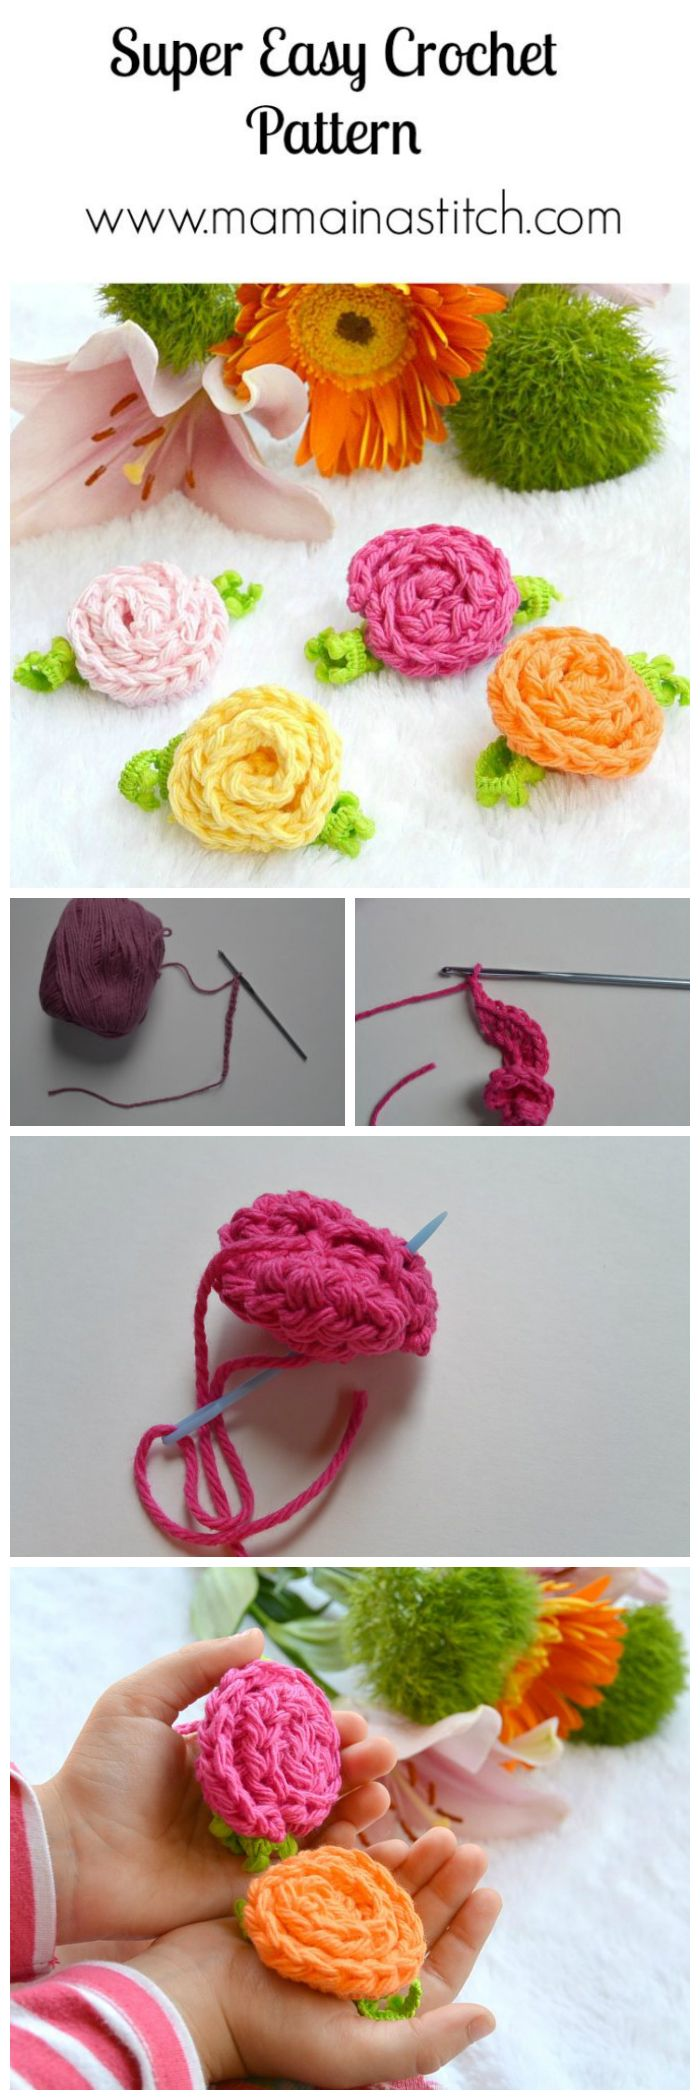 Free Crochet Deco Roses Pattern - crochet flower pattern free | crochet flower pattern | crochet flower pattern free easy